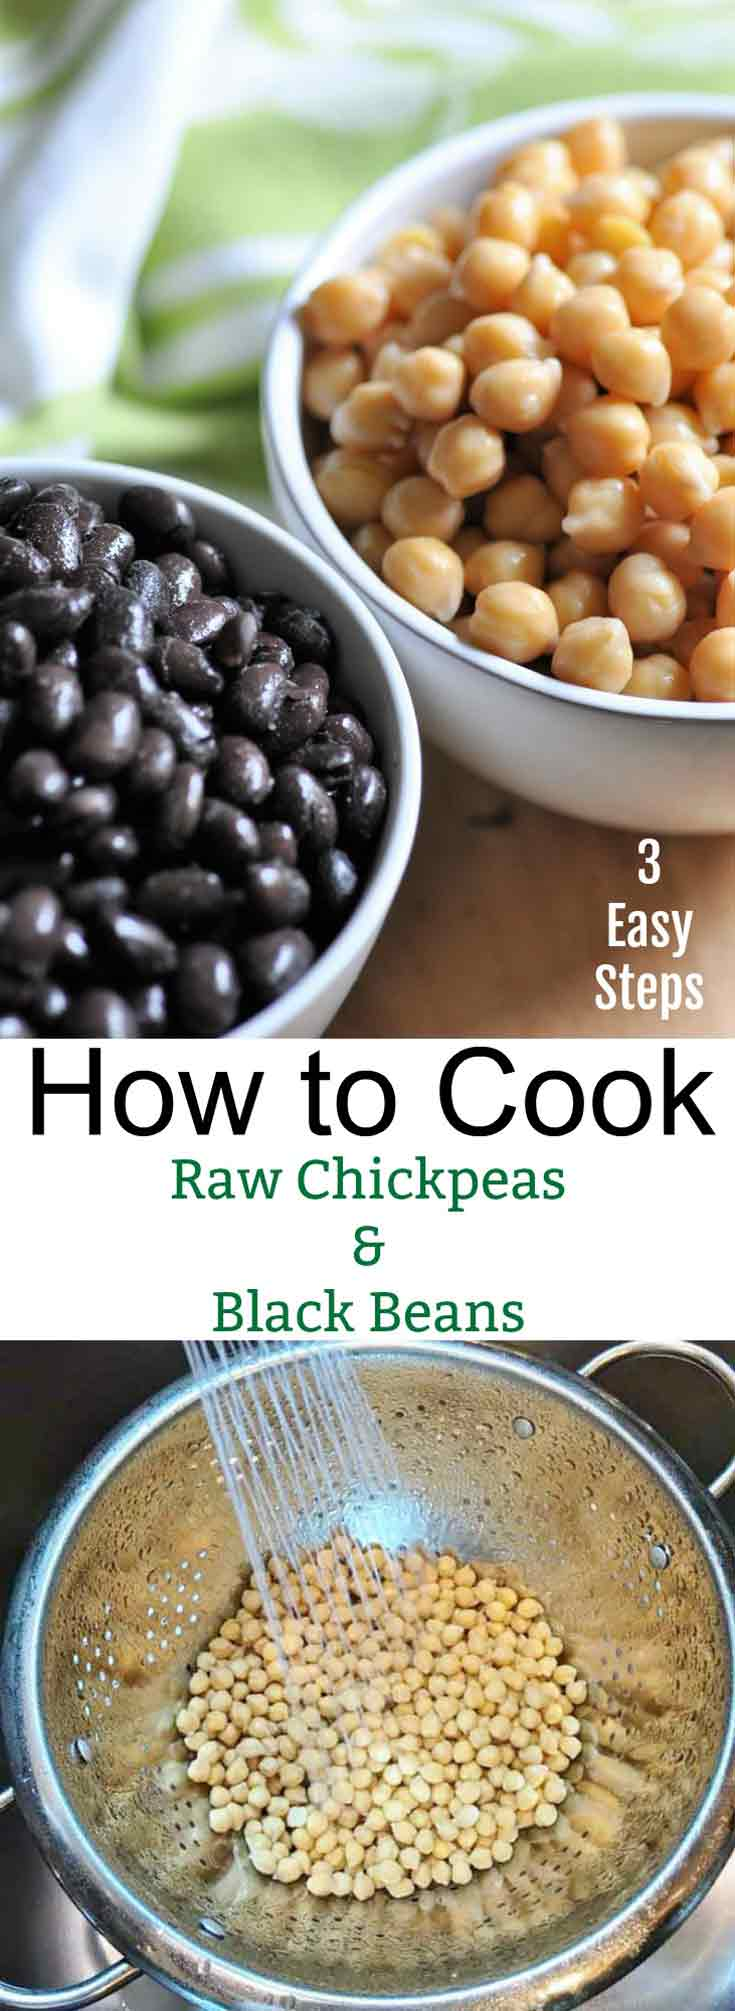 Save money and make your own chickpeas & black beans in 3 easy steps!